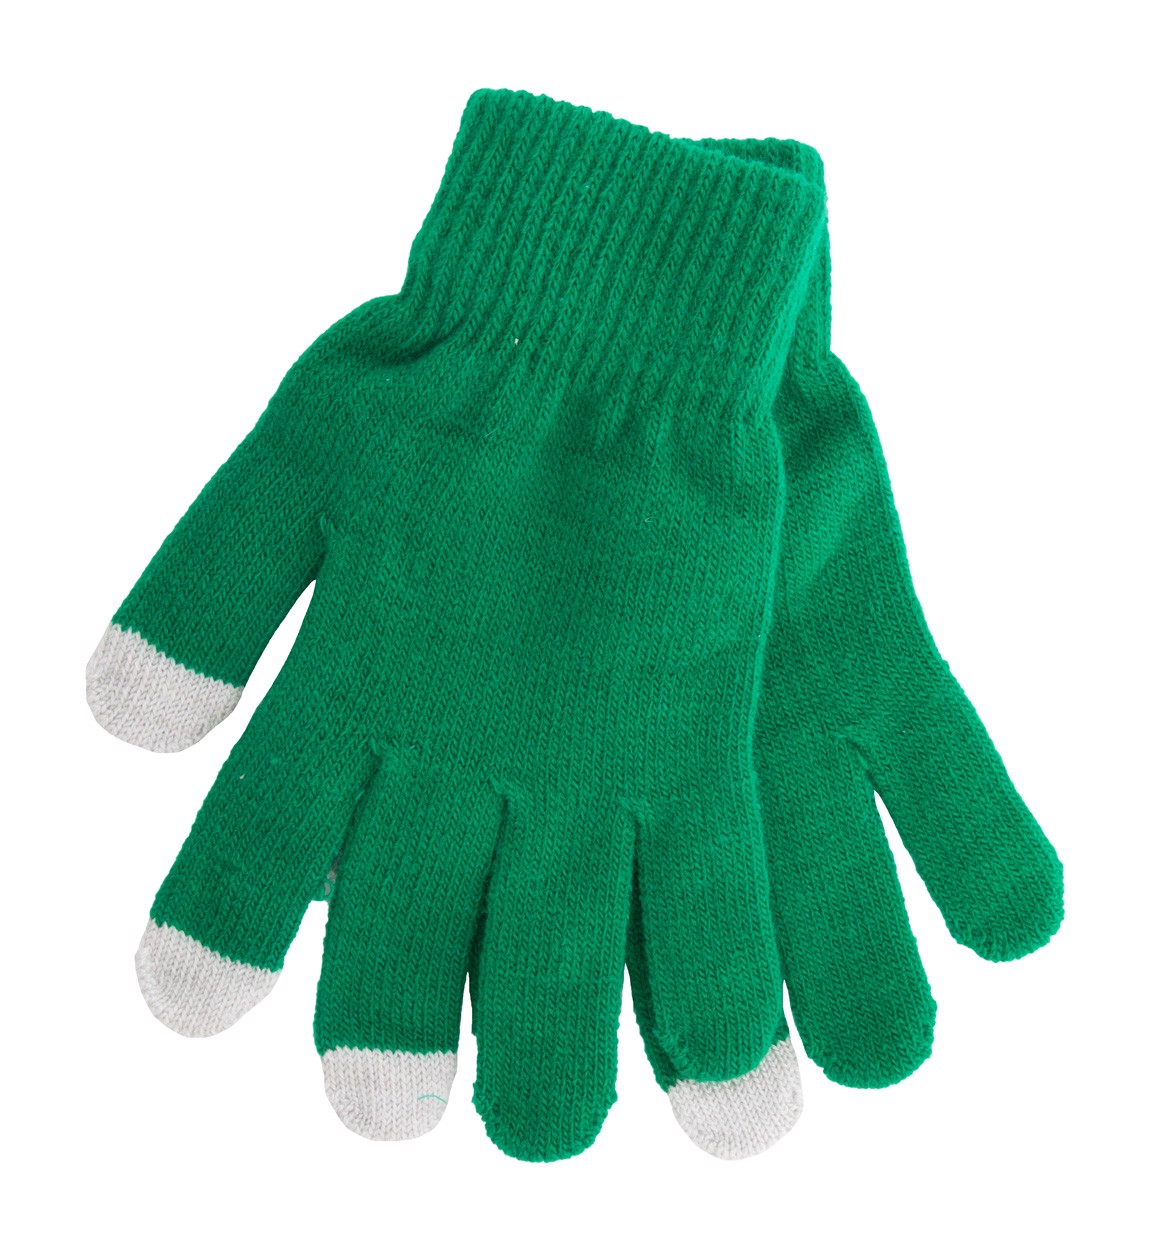 Touch Screen Gloves Actium - Green / Grey